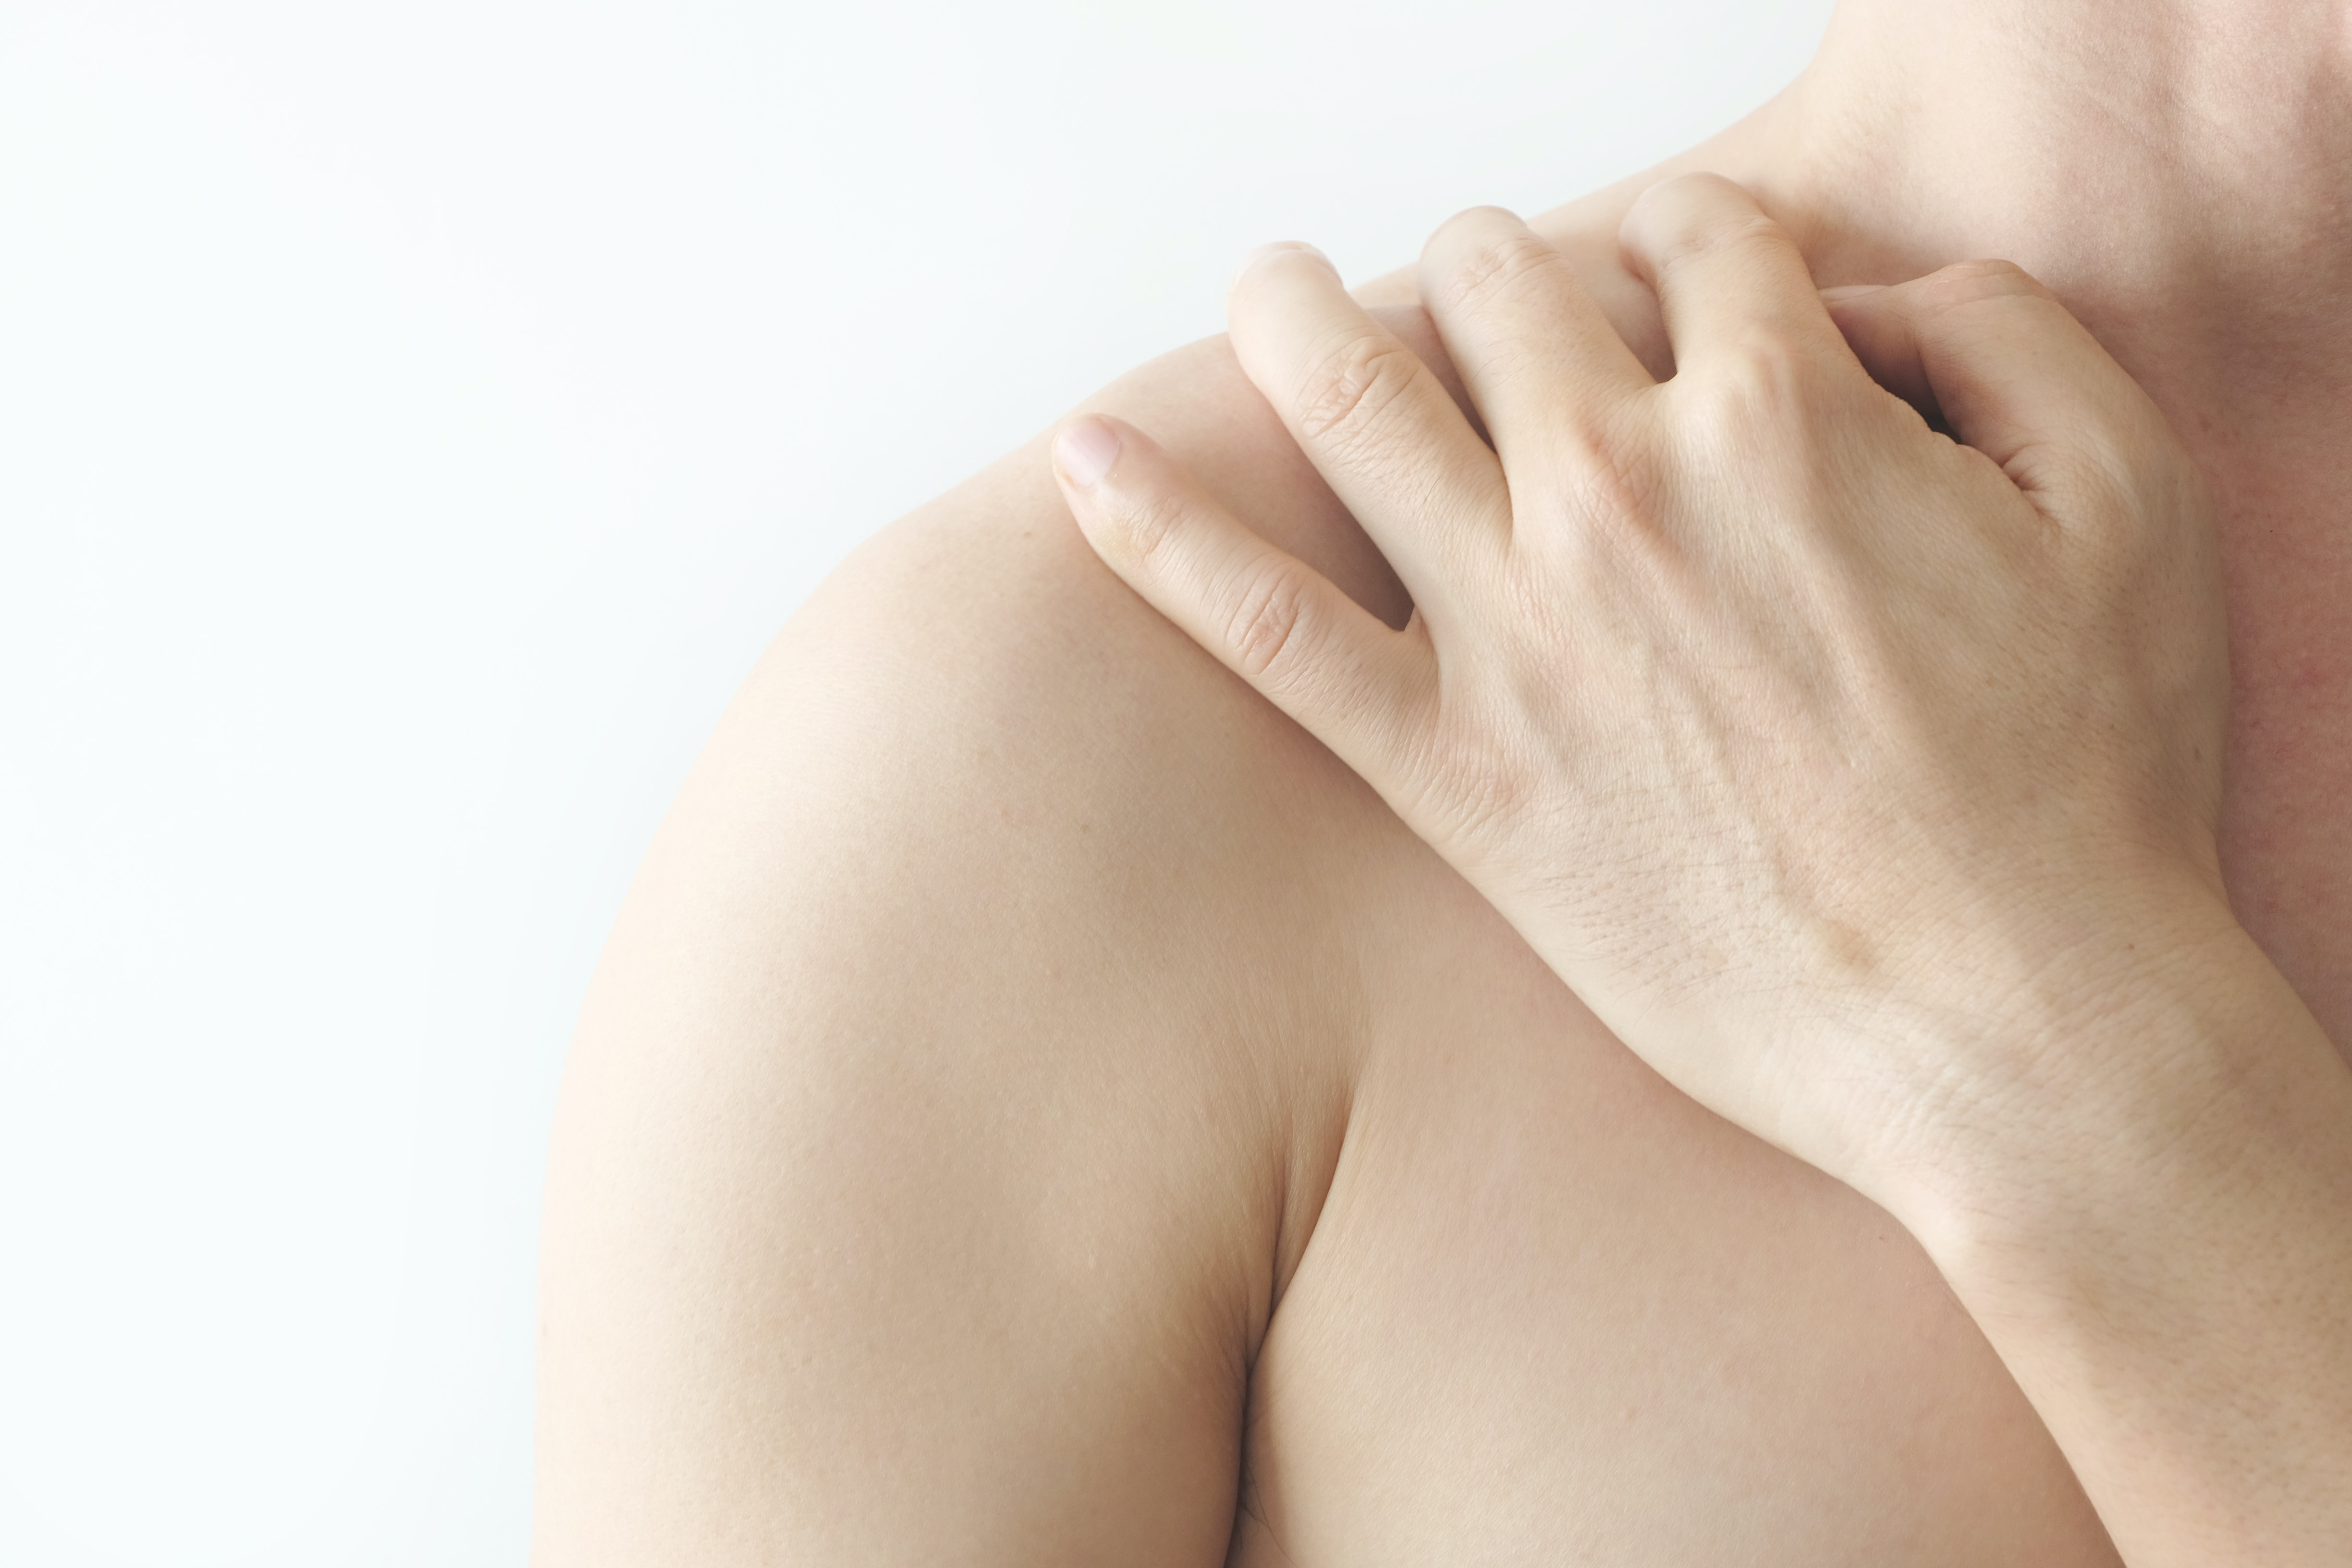 An image depicting a person suffering from skin-colored shoulder mass symptoms